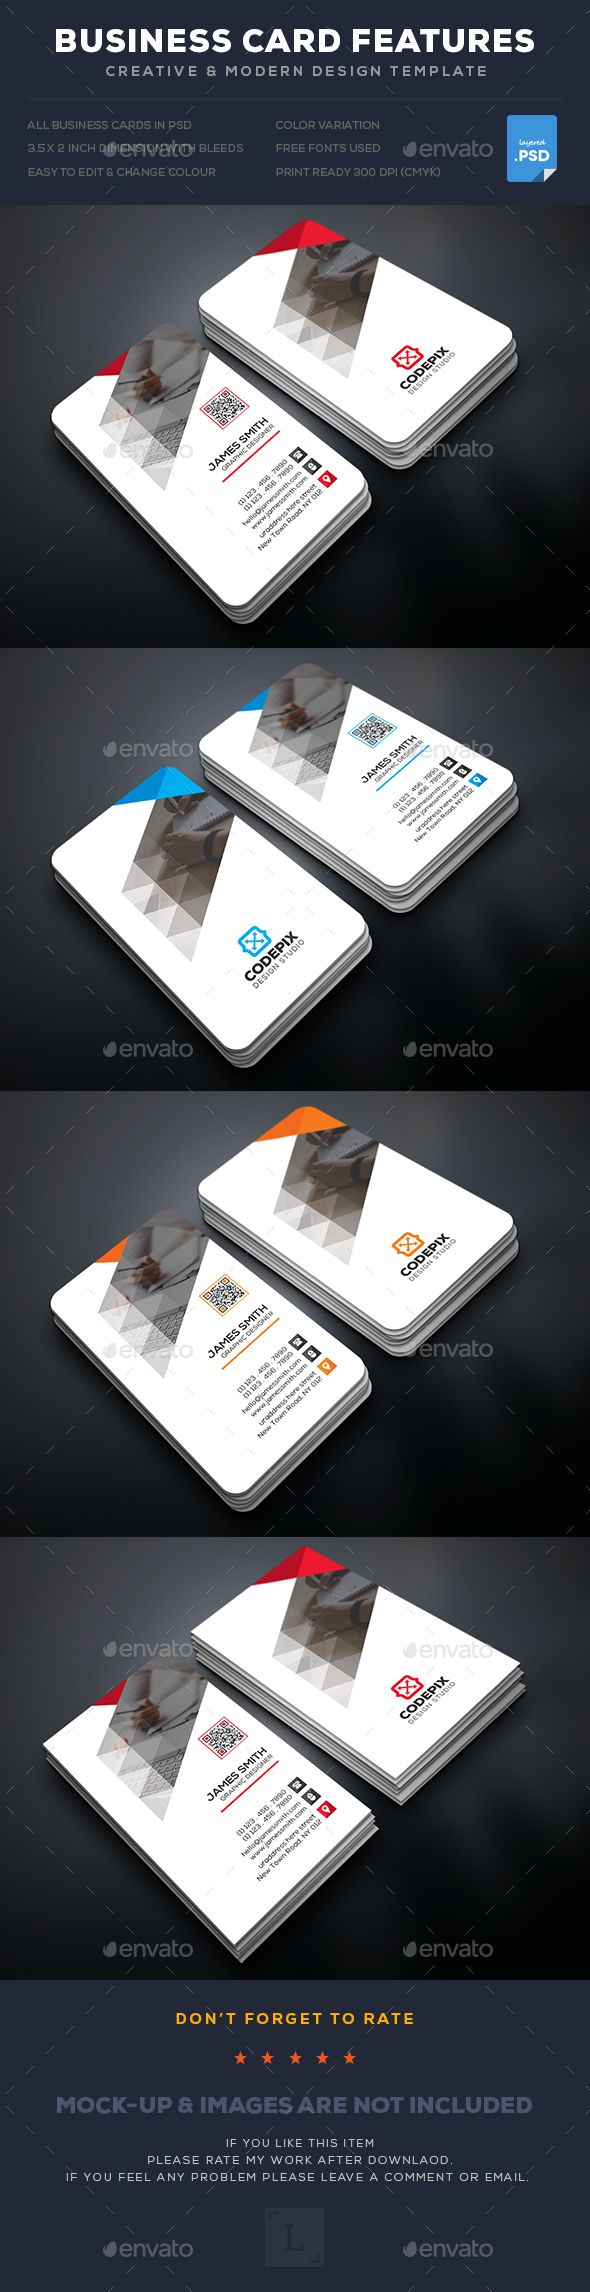 892 best business card templates images on pinterest business card business card photography business cardsphotography flyerphotography templatesphotography fbccfo Image collections